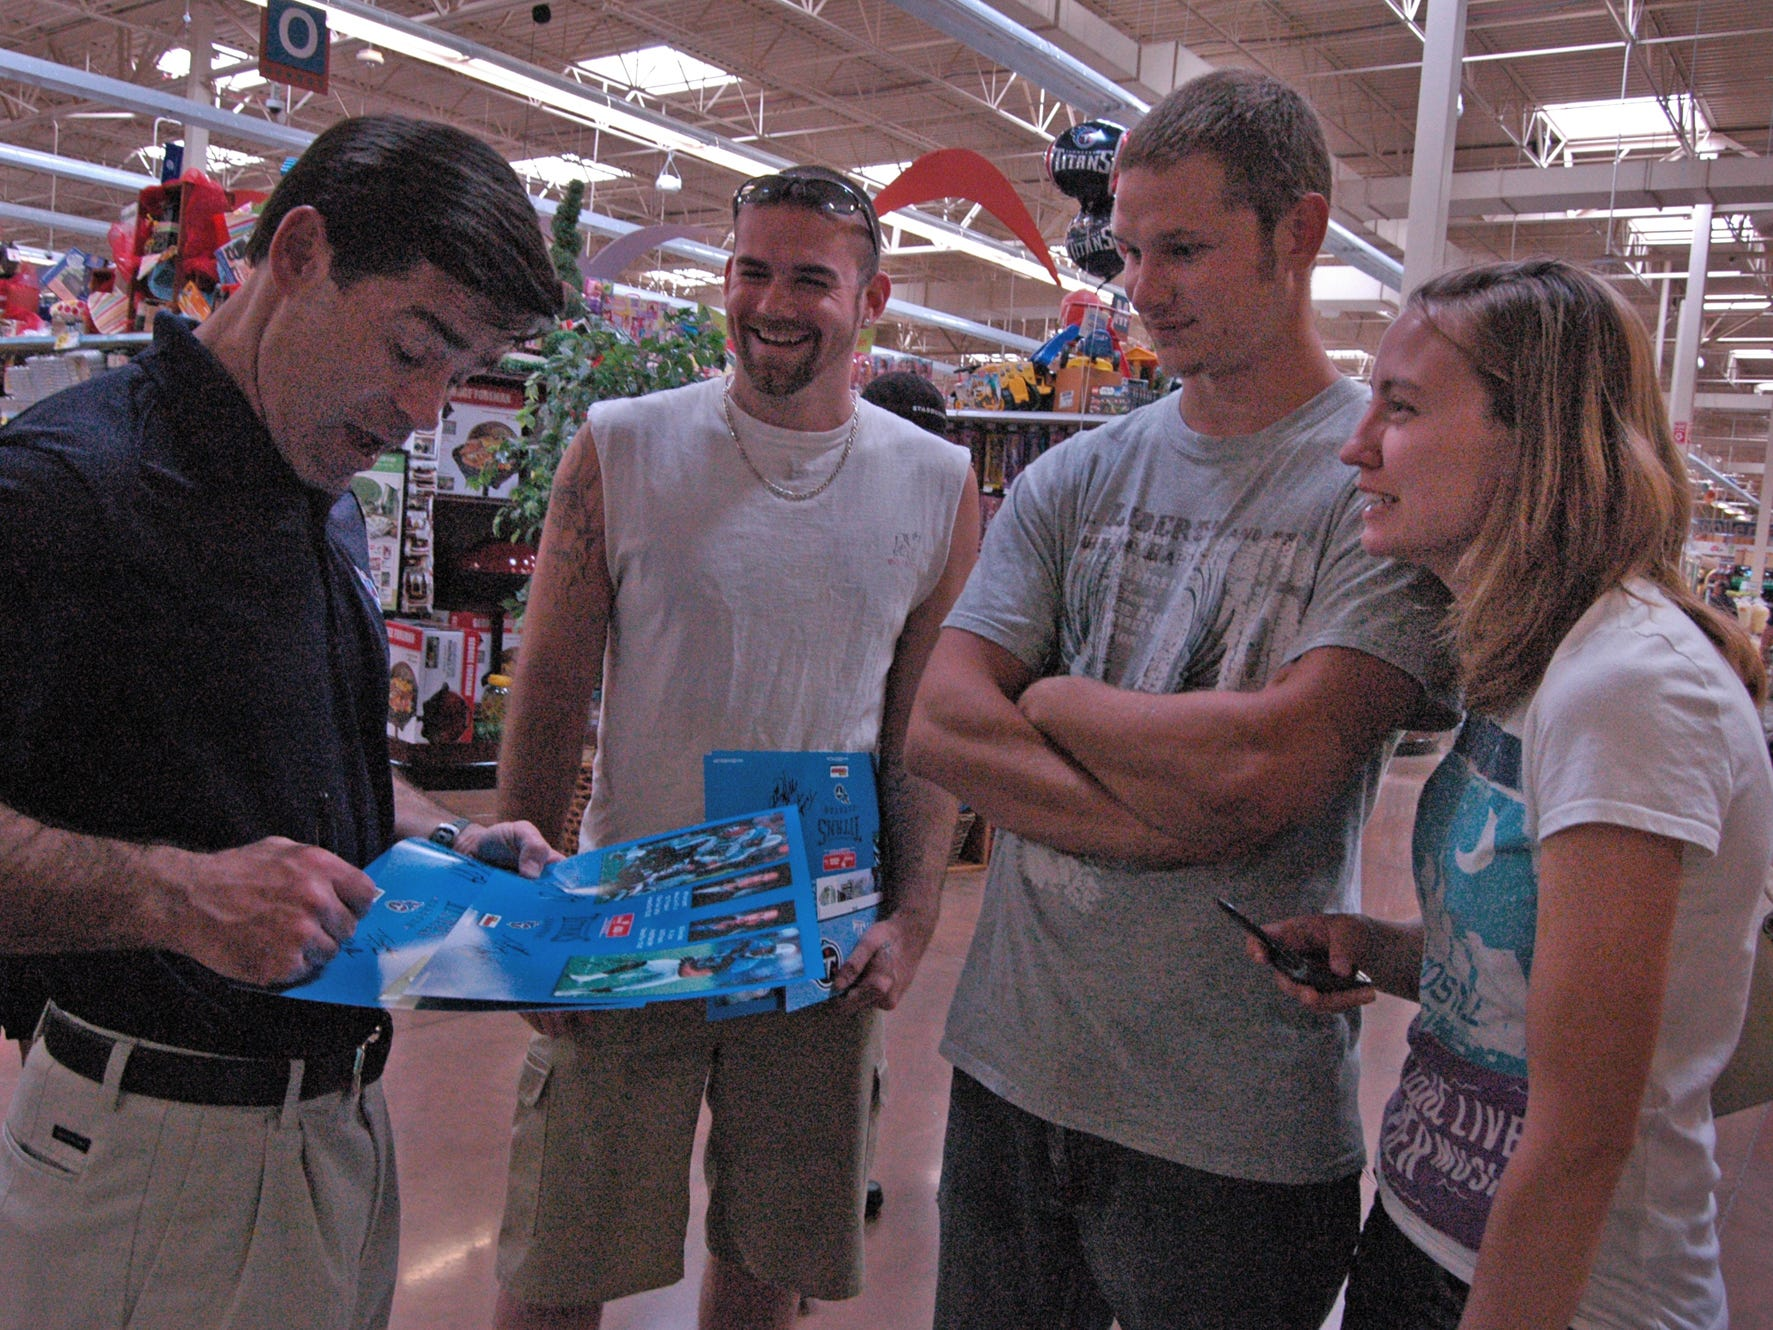 From left: Voice of the Titans Mike Keith signs autographs for Josh Allen, Jeremy Sellars and Cindy Harness, all of Gallatin, during the Caravan For Kids at the Kroger Marketplace in 2012.